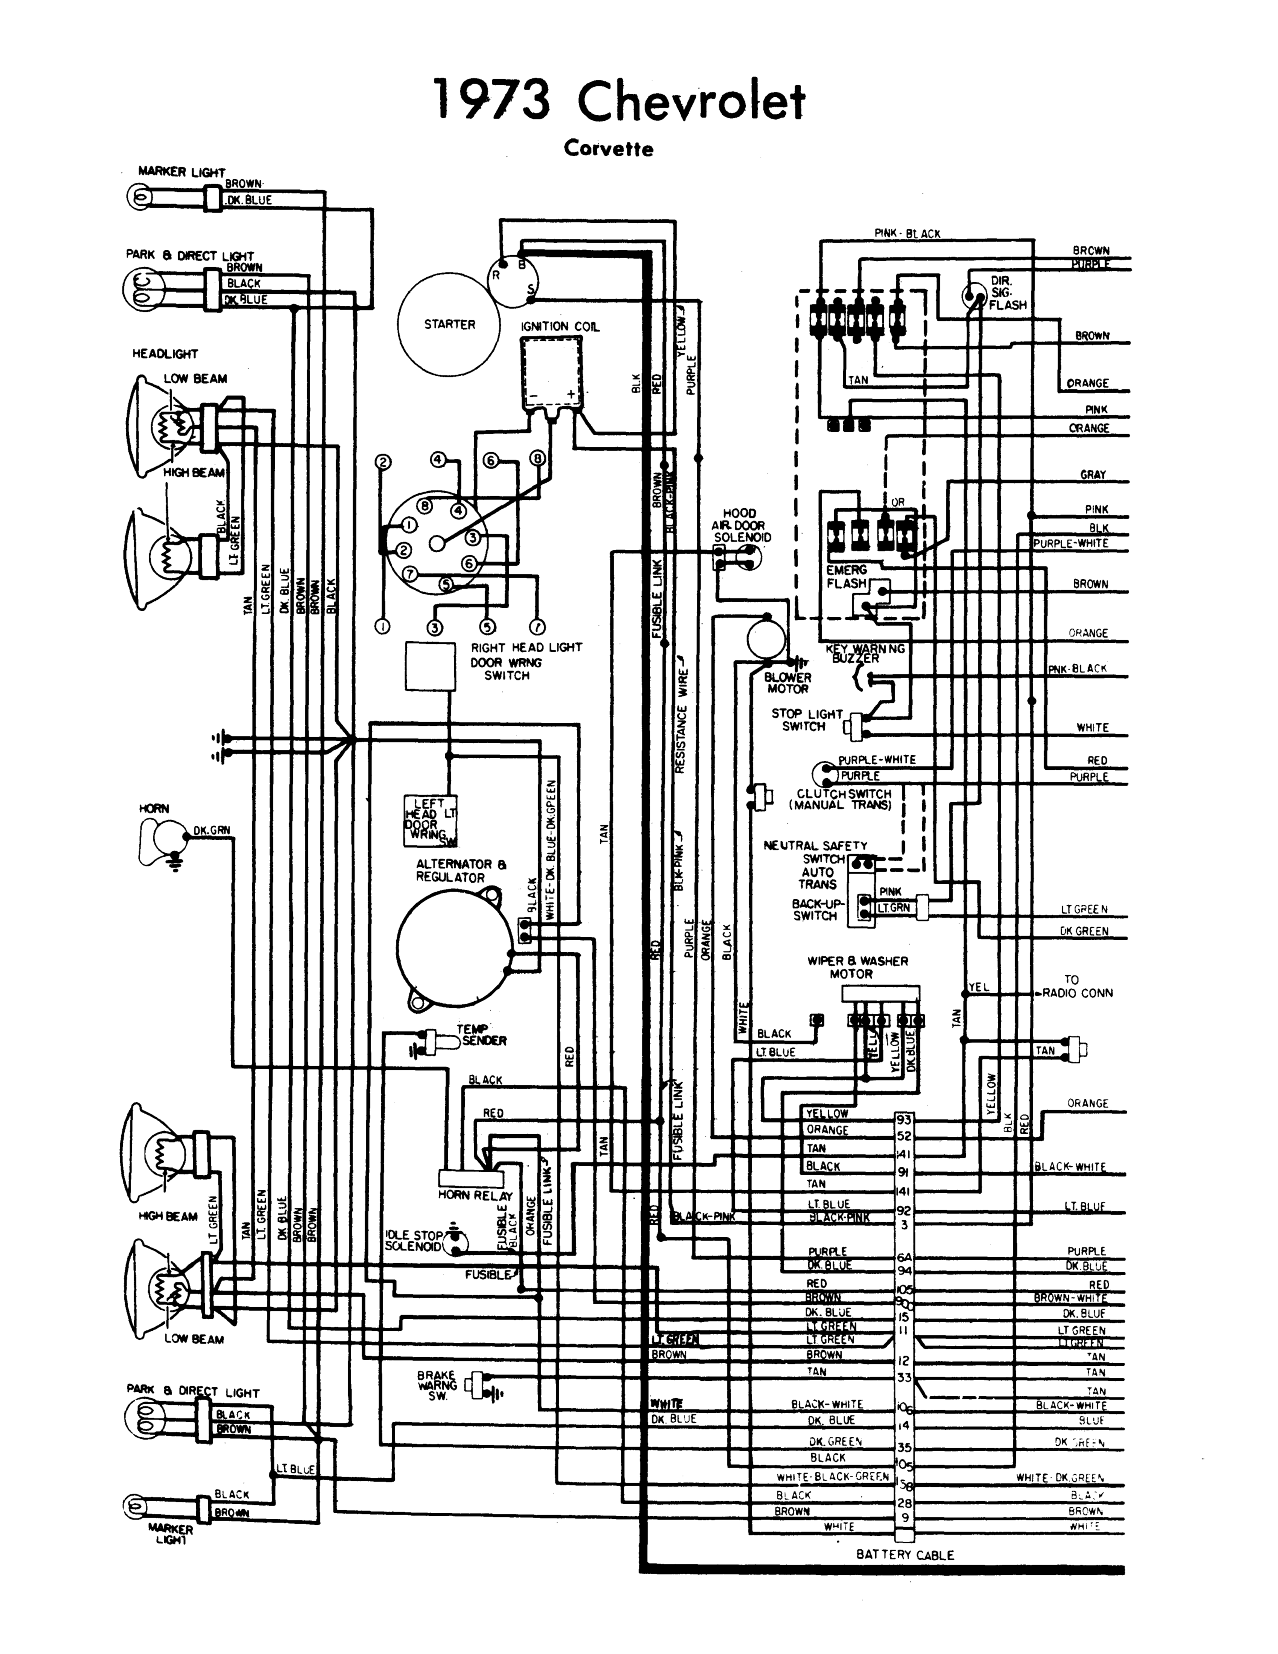 medium resolution of wiring diagram 1973 corvette chevy corvette 1973 wiring diagrams